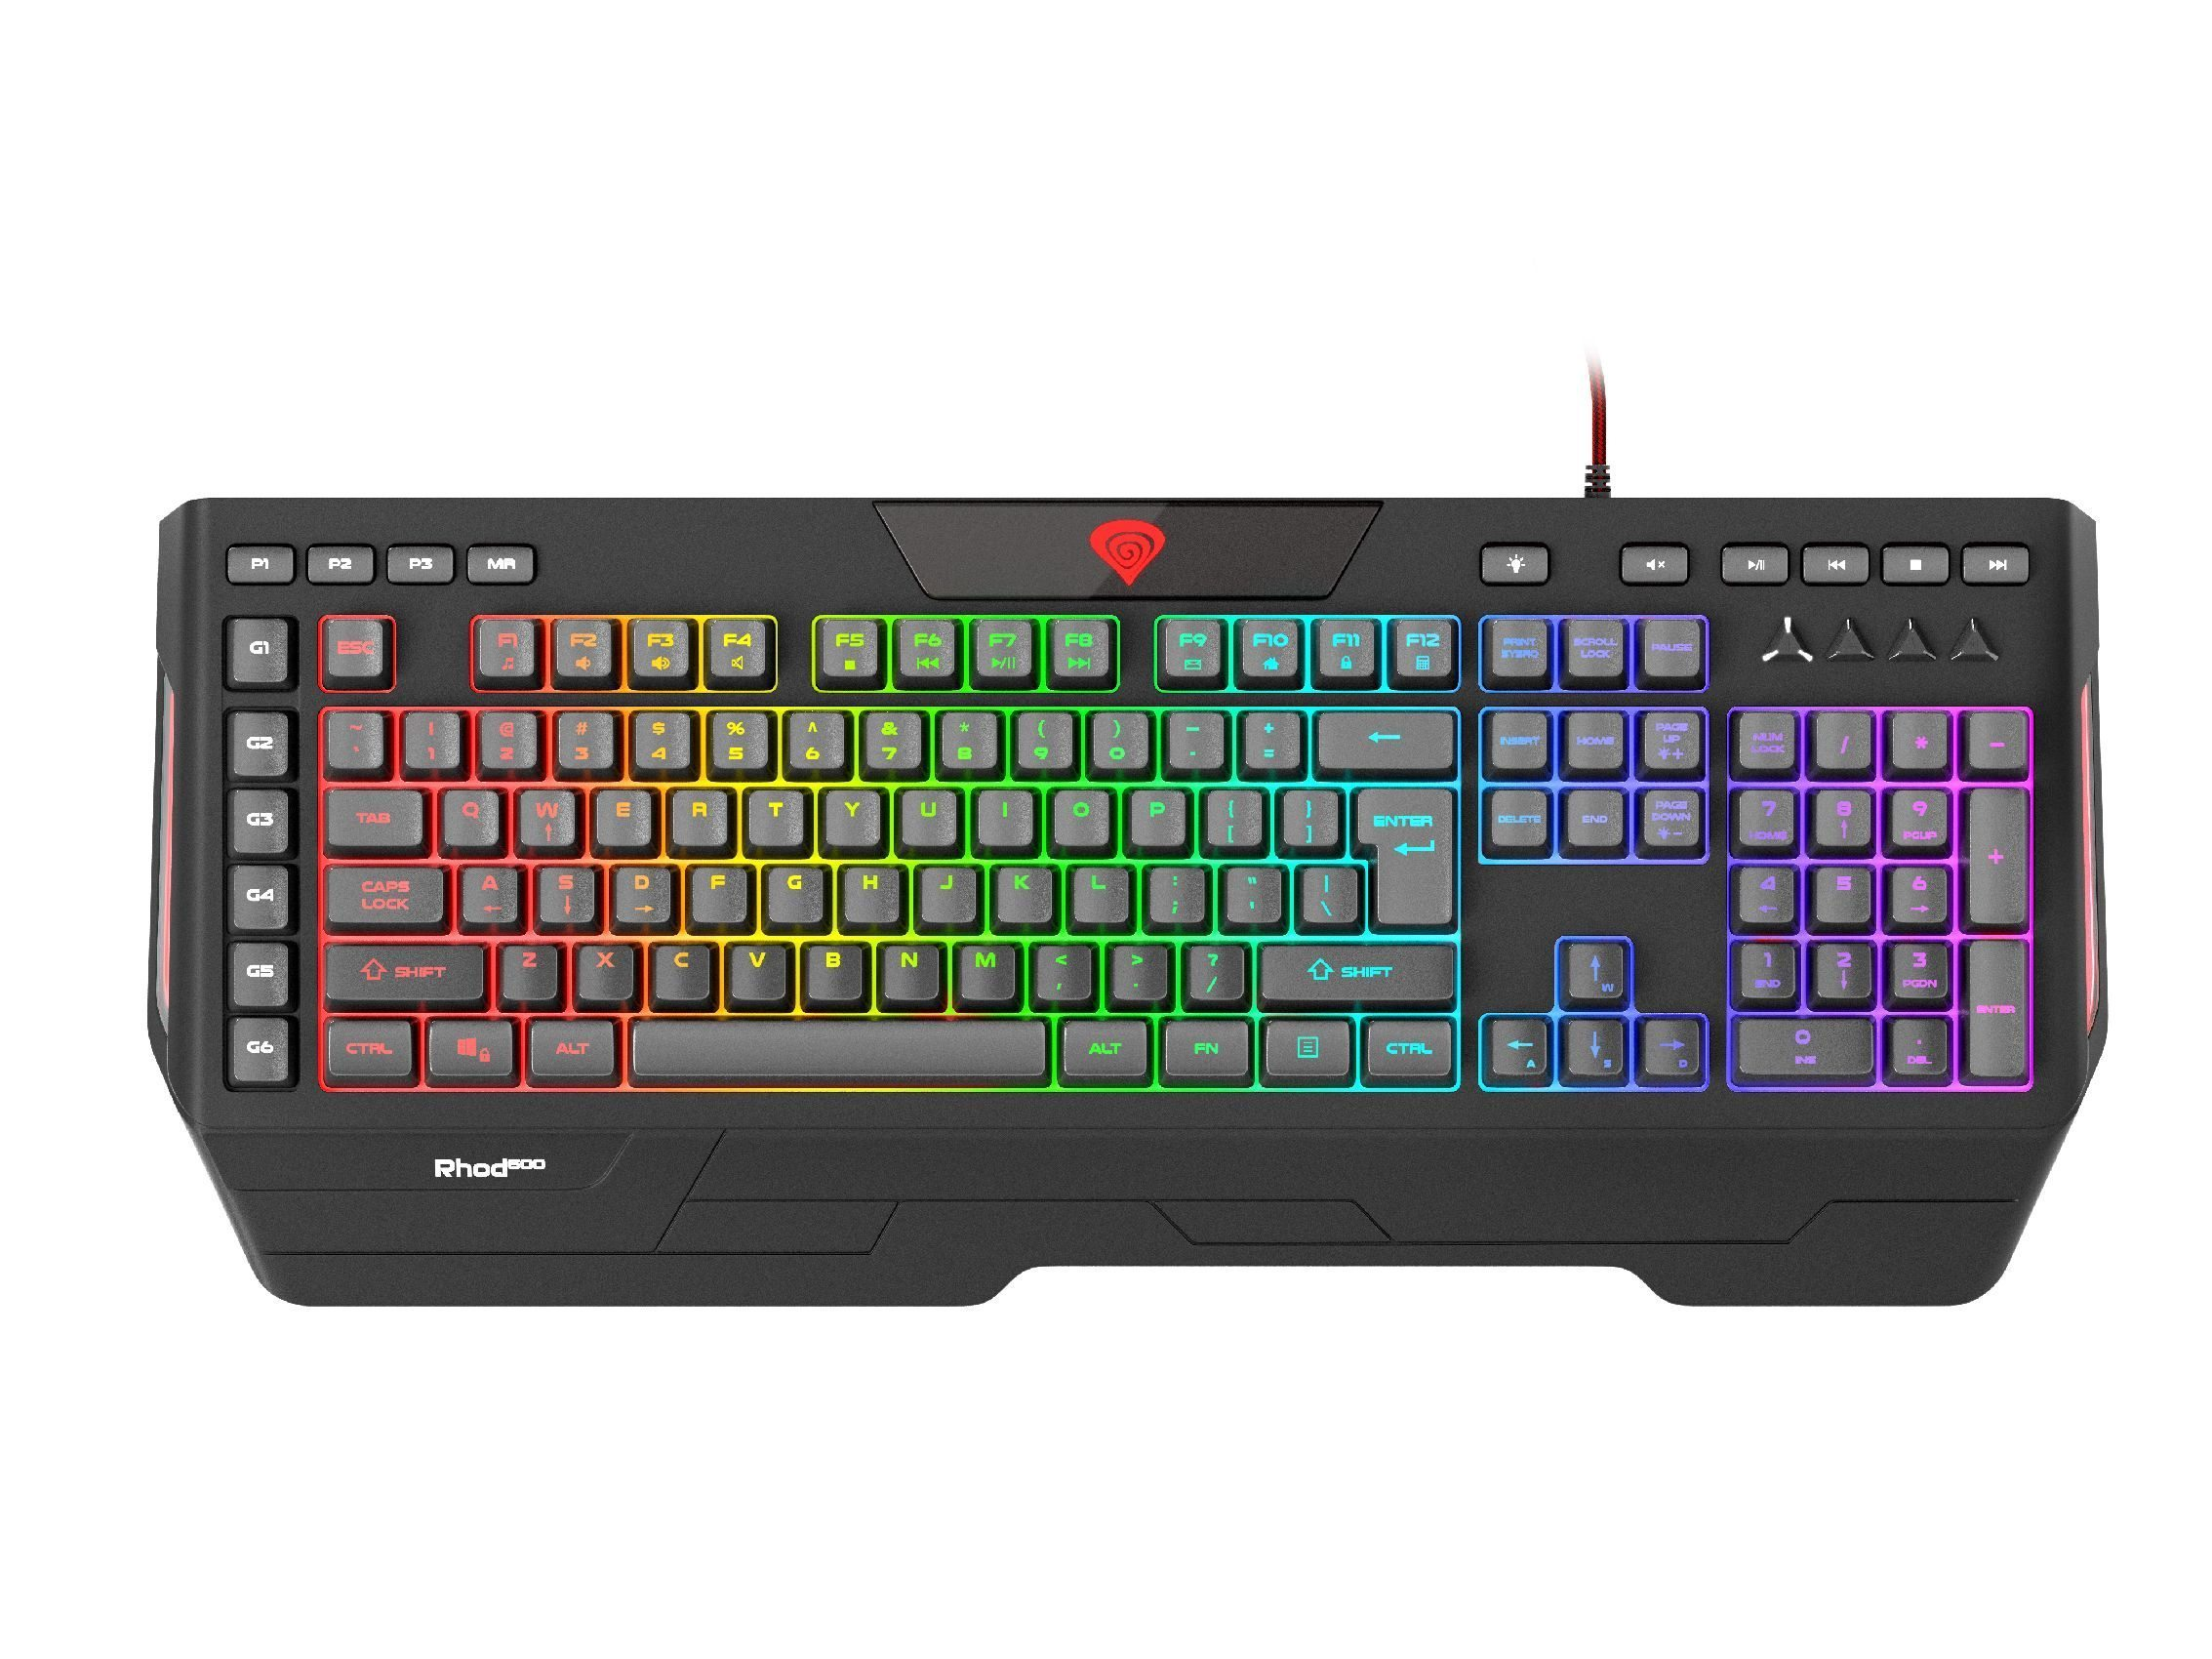 геймърска клавиатура Gaming Keyboard 120 keys RHOD 600 RGB - NKG-1072